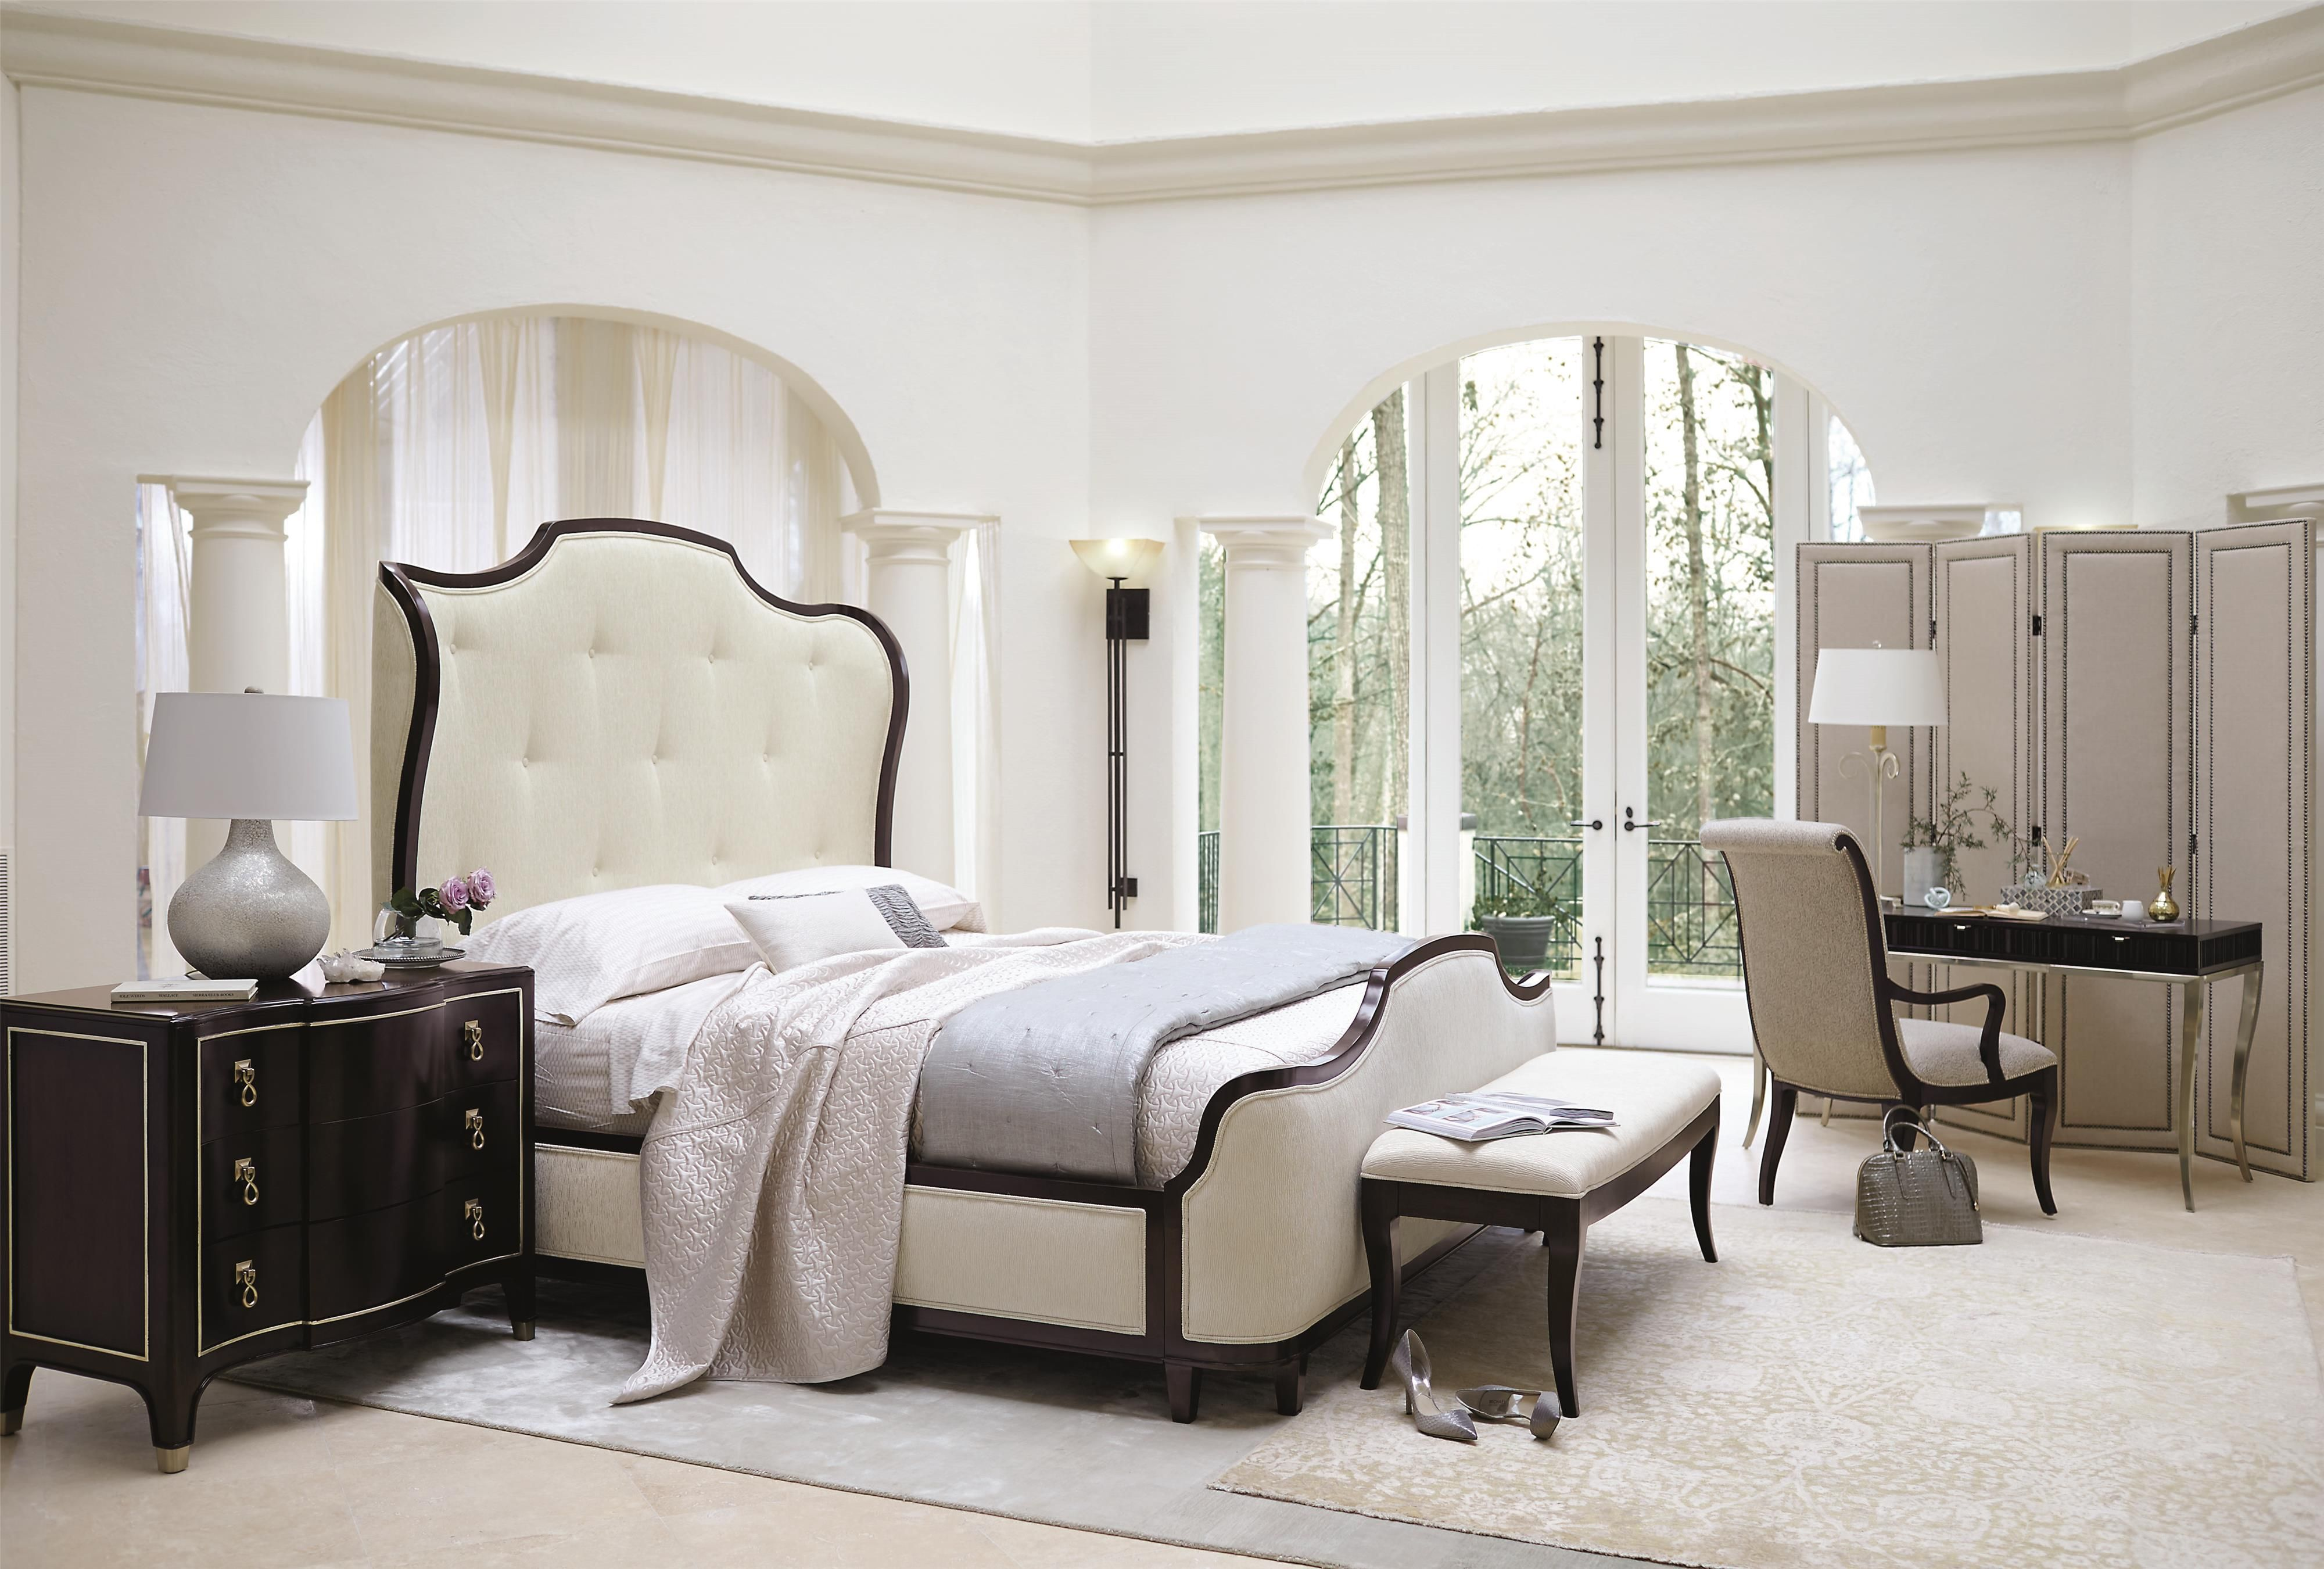 Brilliant Miramont King Bedroom Group 4 By Bernhardt Luxe Home Interior And Landscaping Analalmasignezvosmurscom